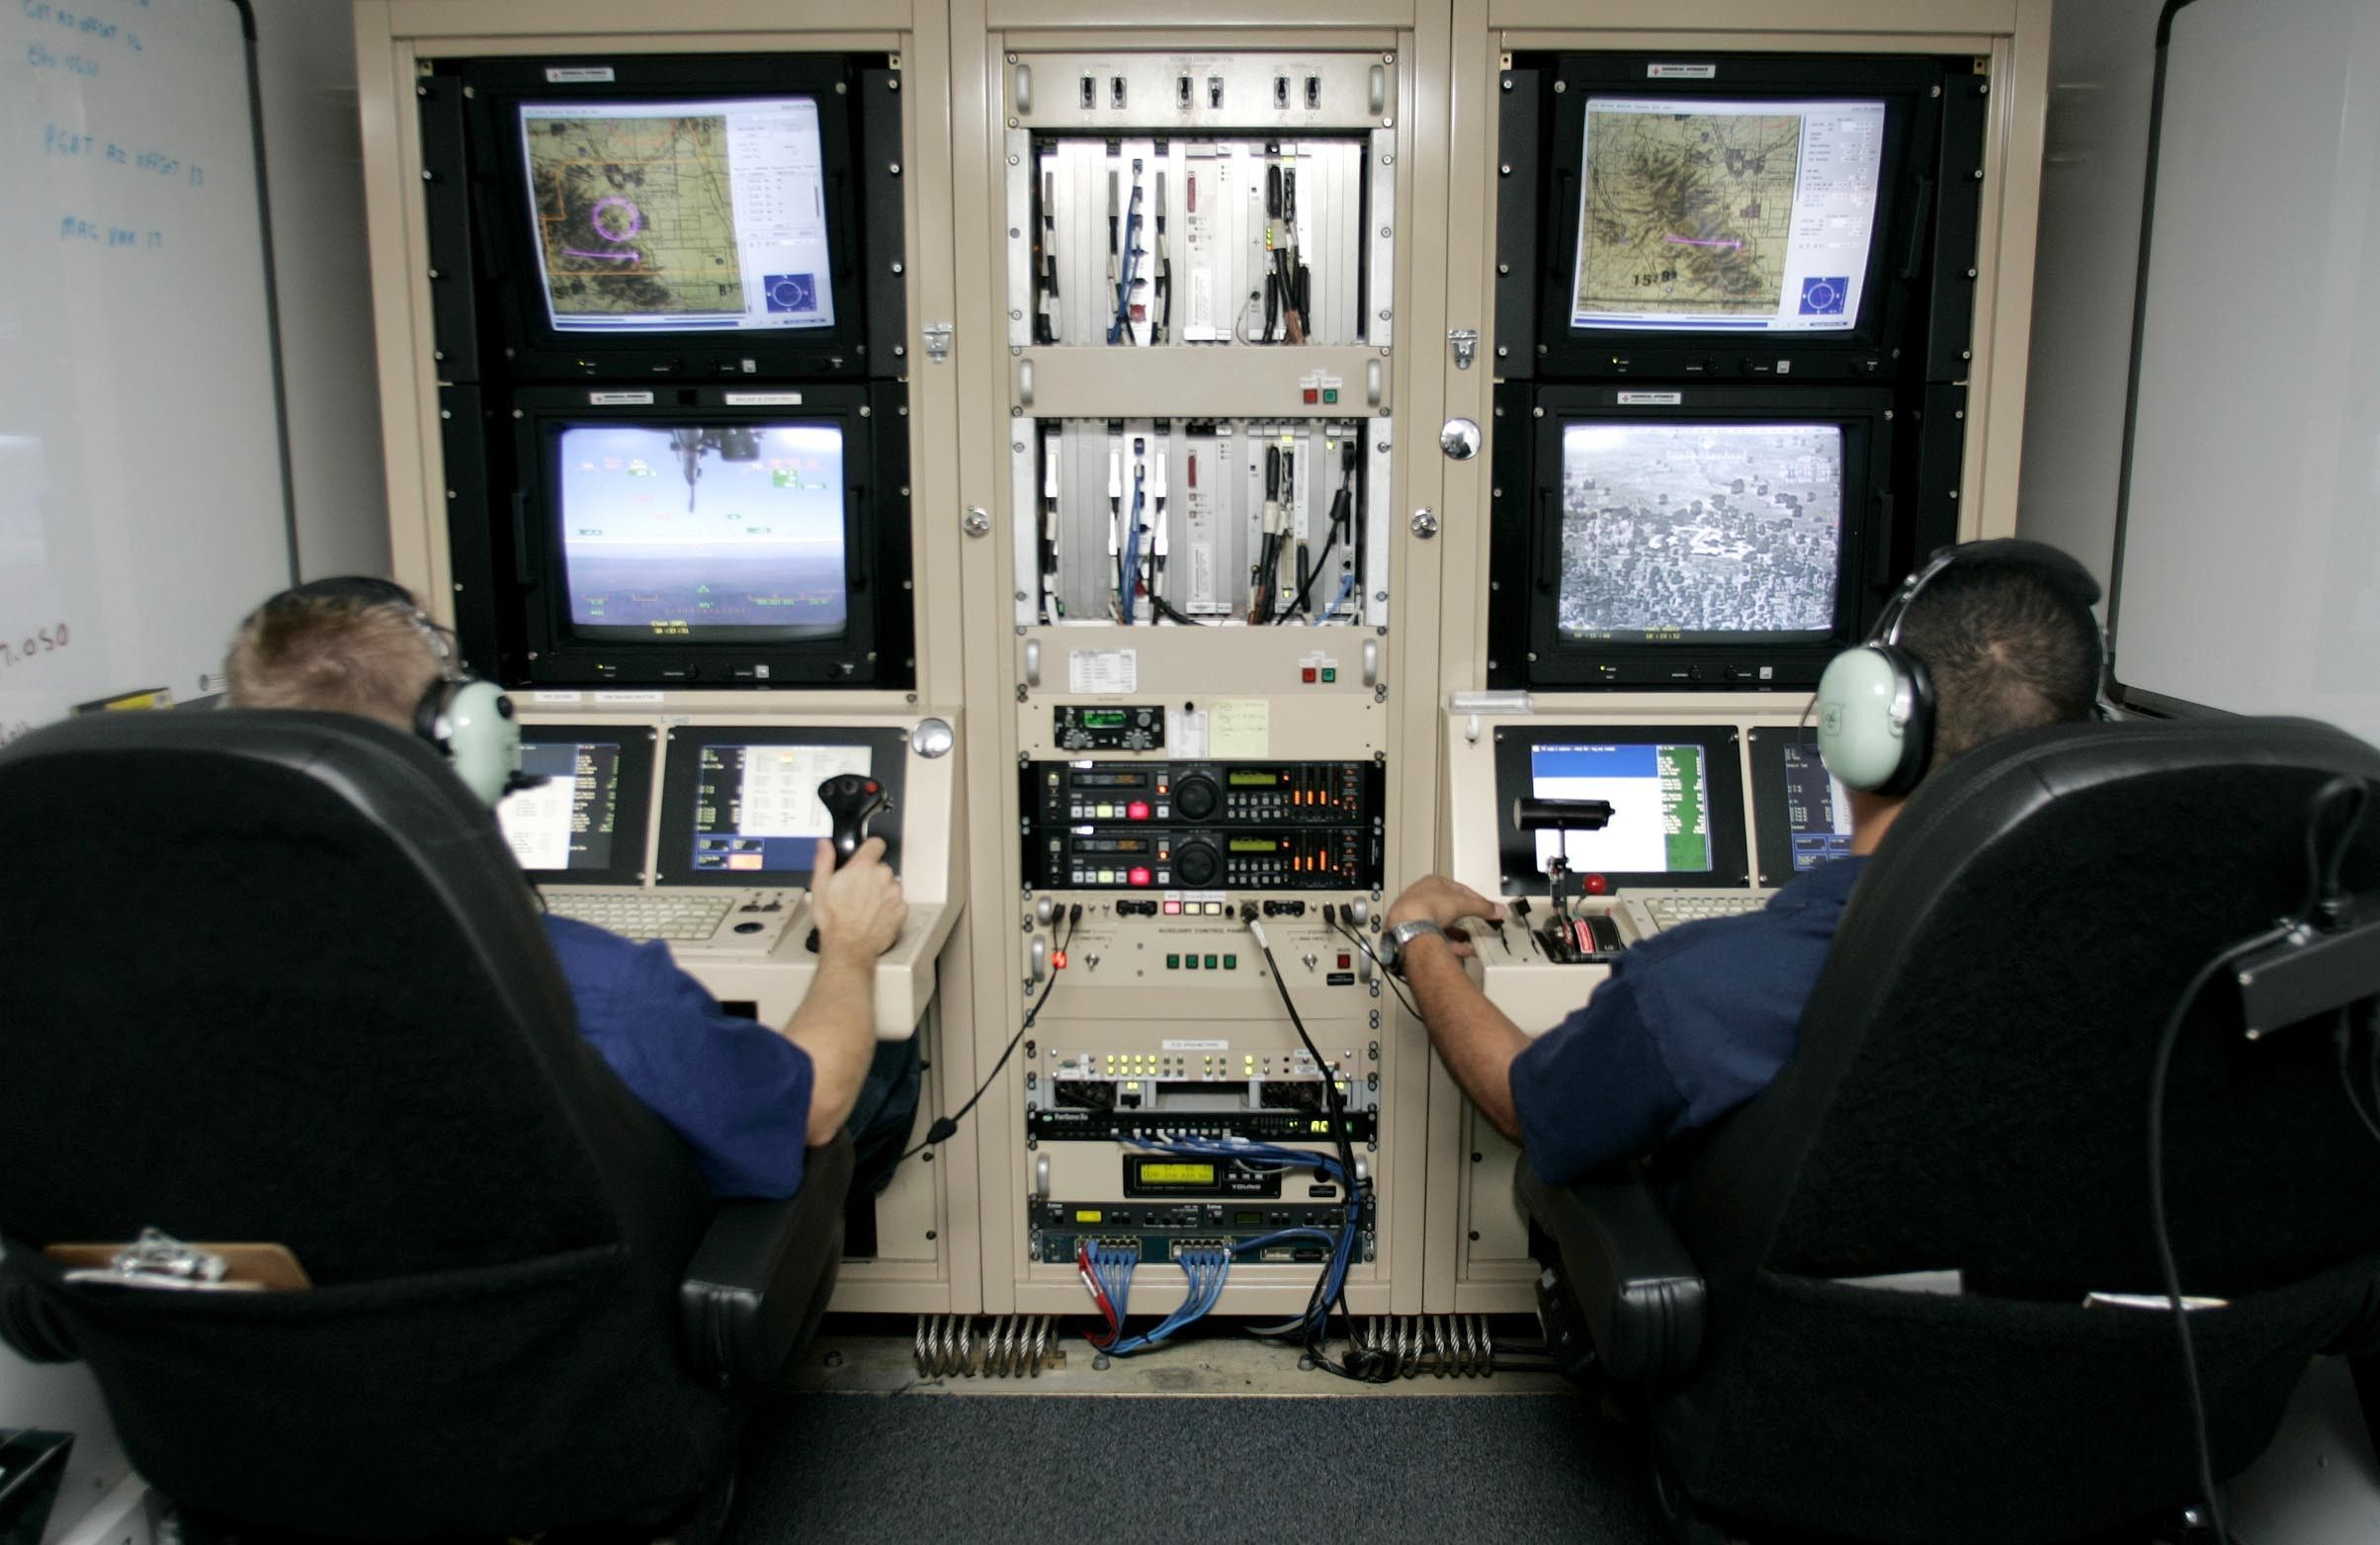 Controllers of the Unmanned Aircraft System (UAS)